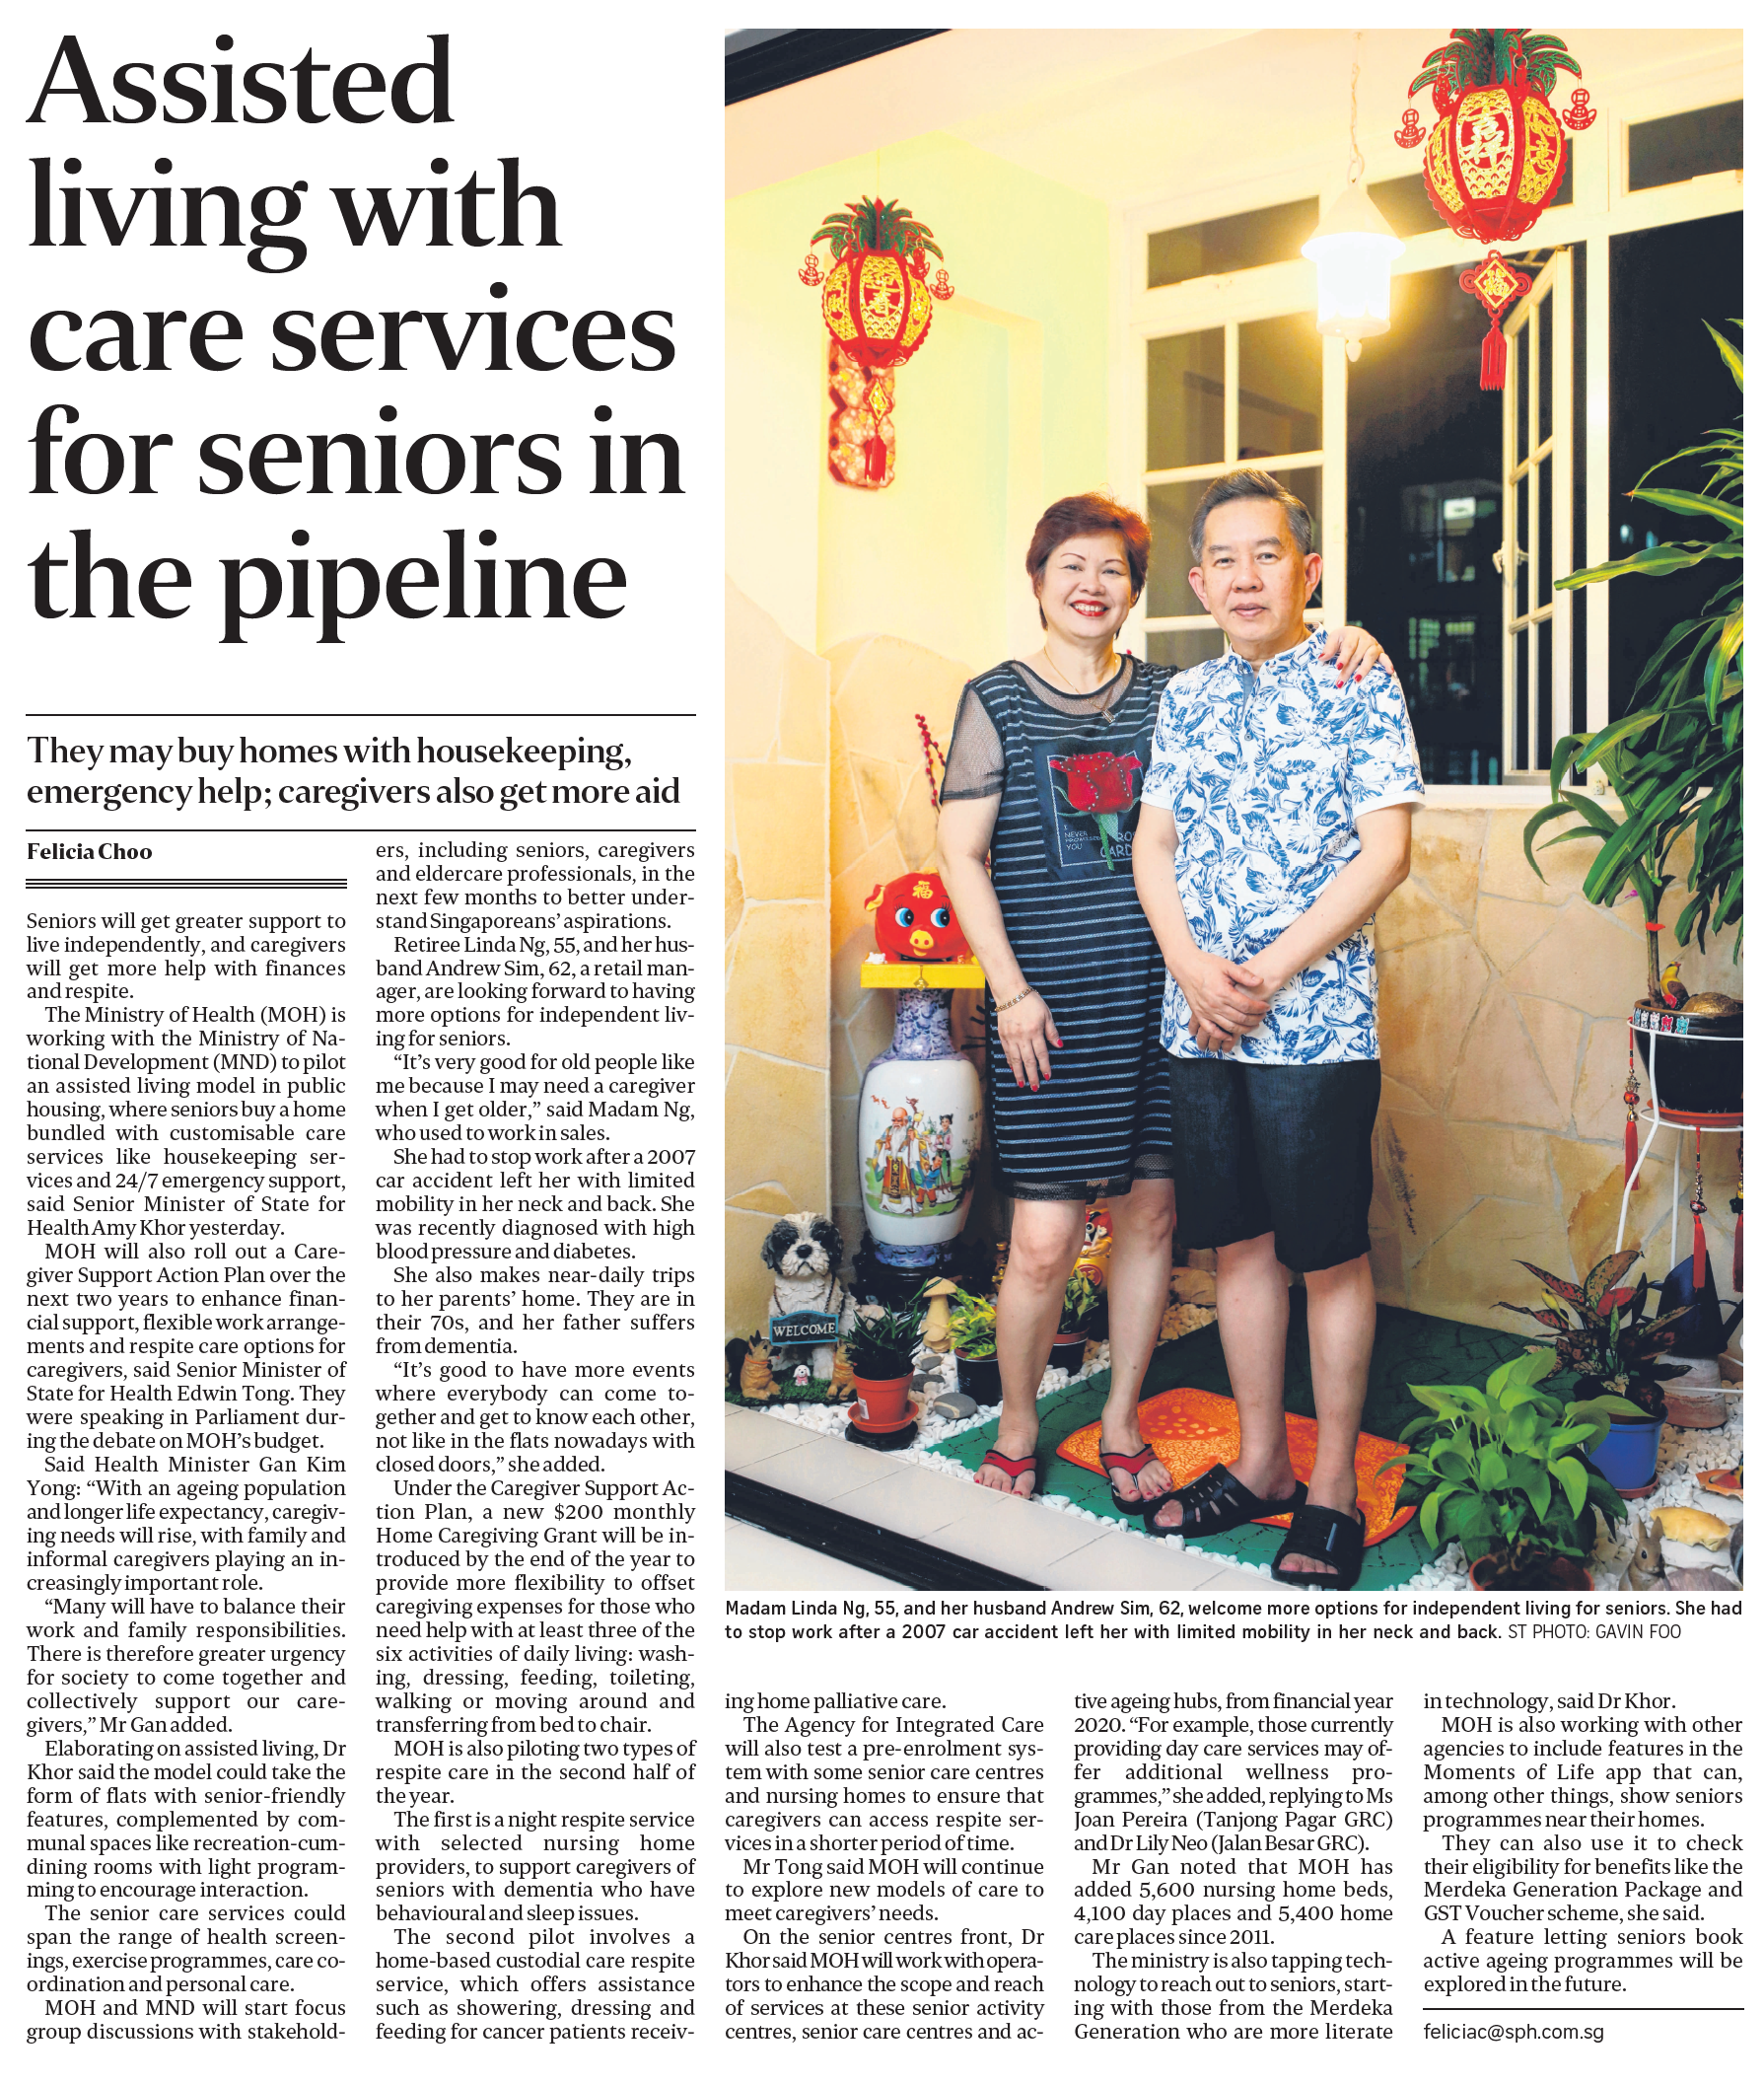 ST, 7 Mar 2019, pB8 - Assisted living with care services for seniors in the pipeline